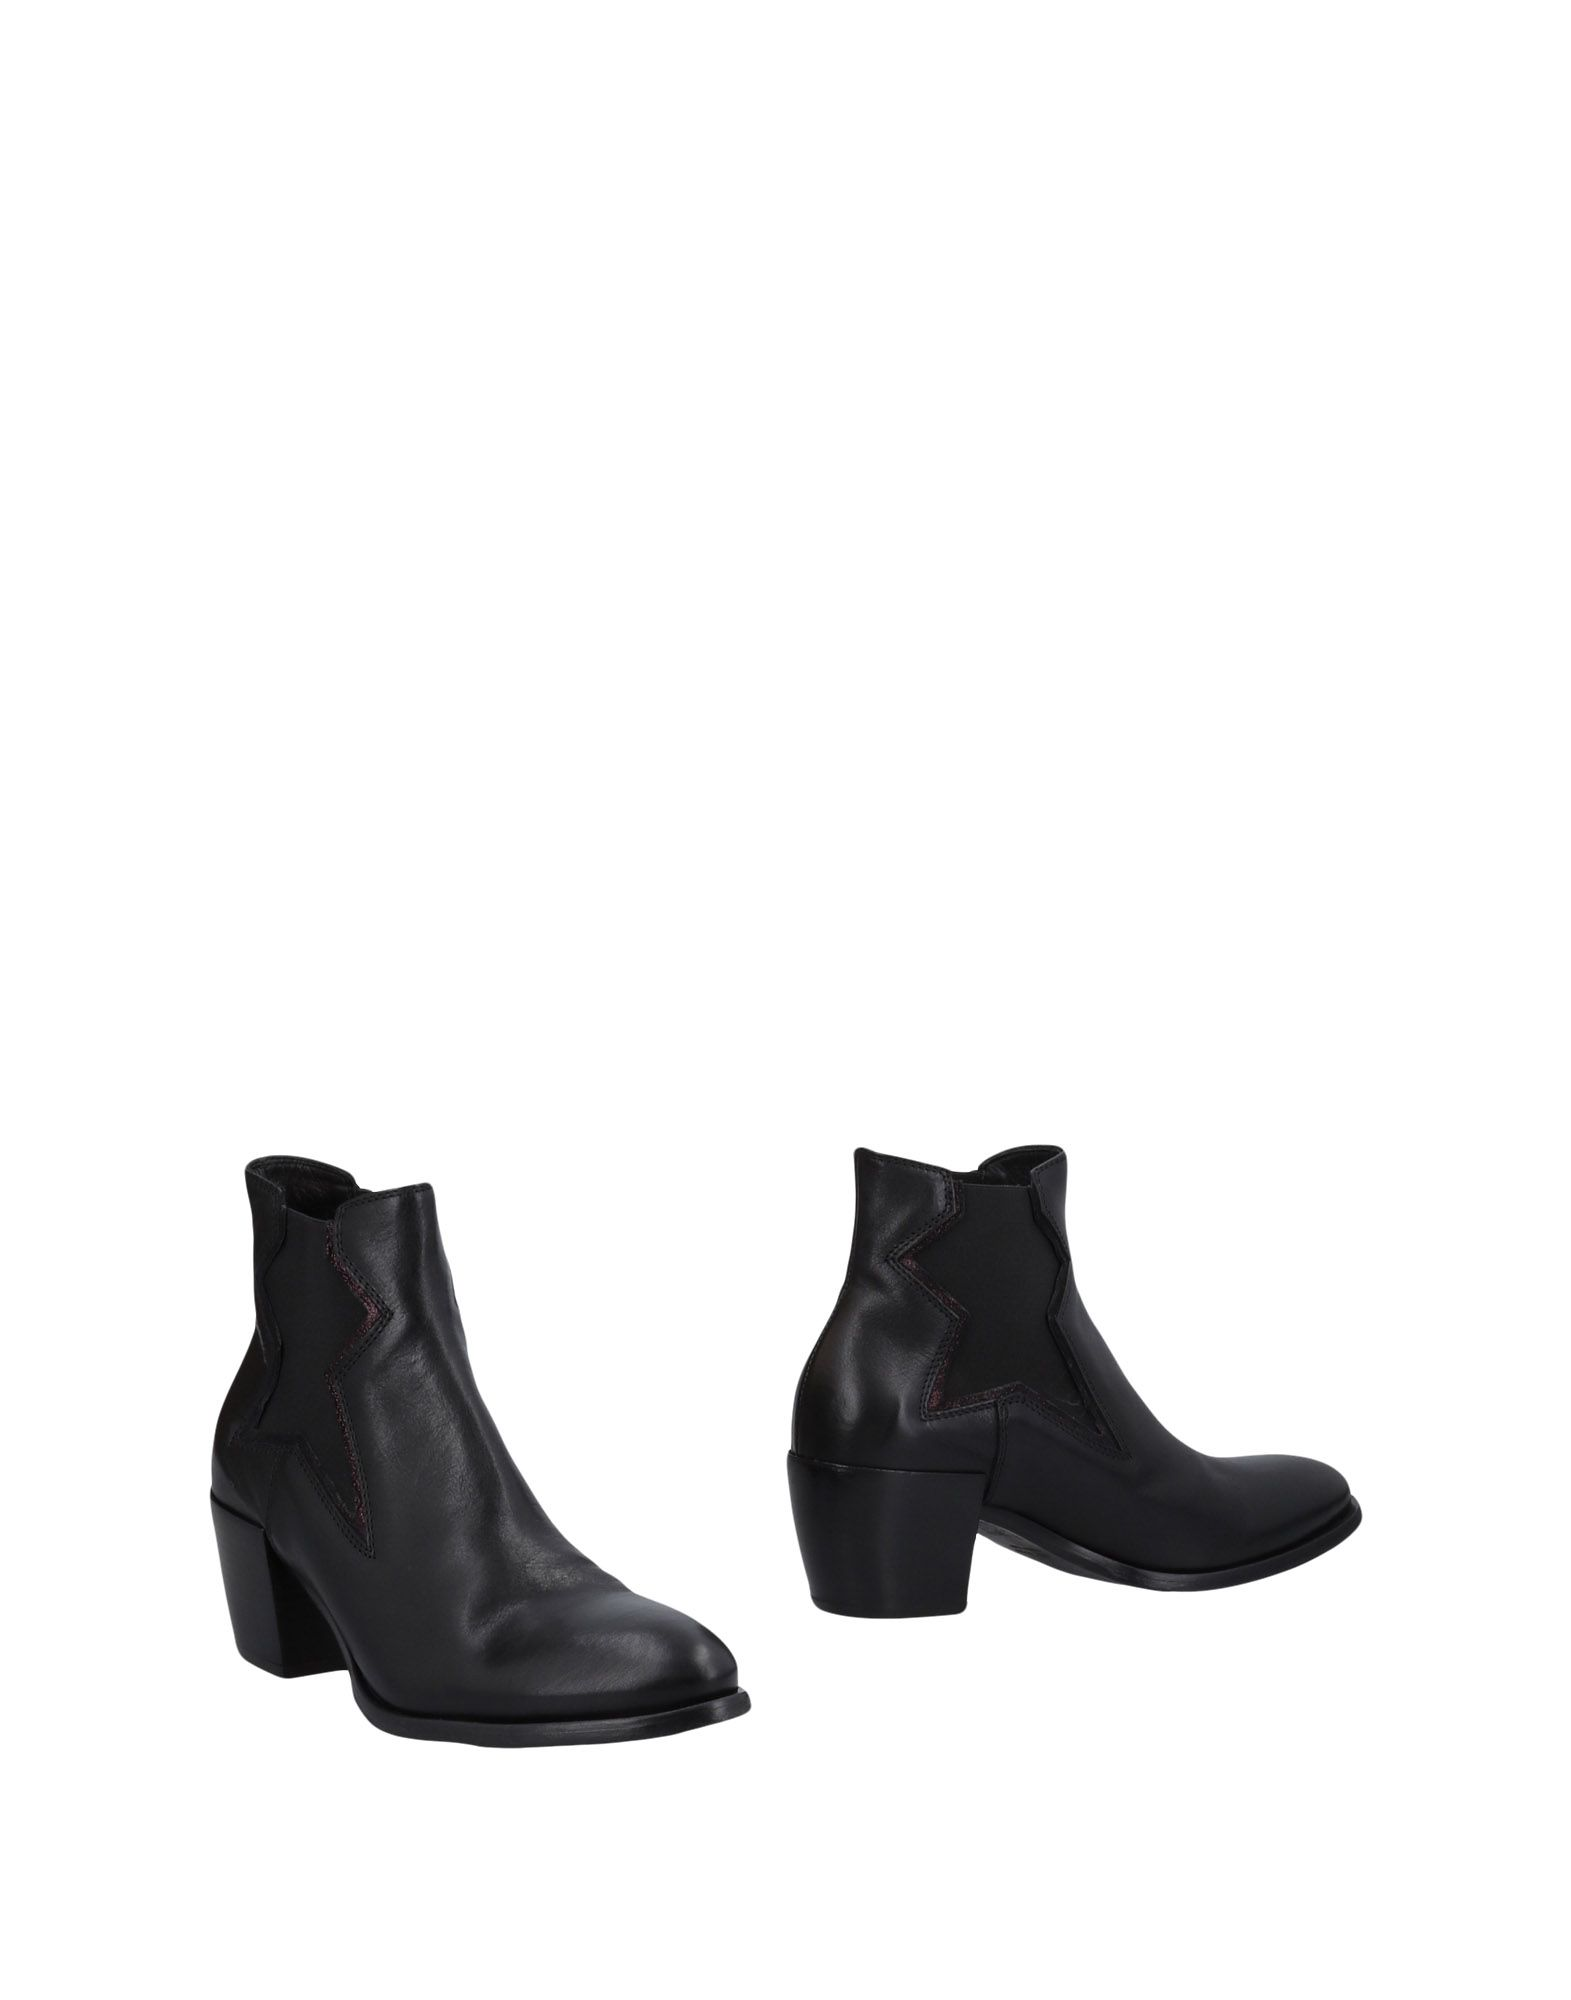 LEMARÉ Ankle Boot in Black